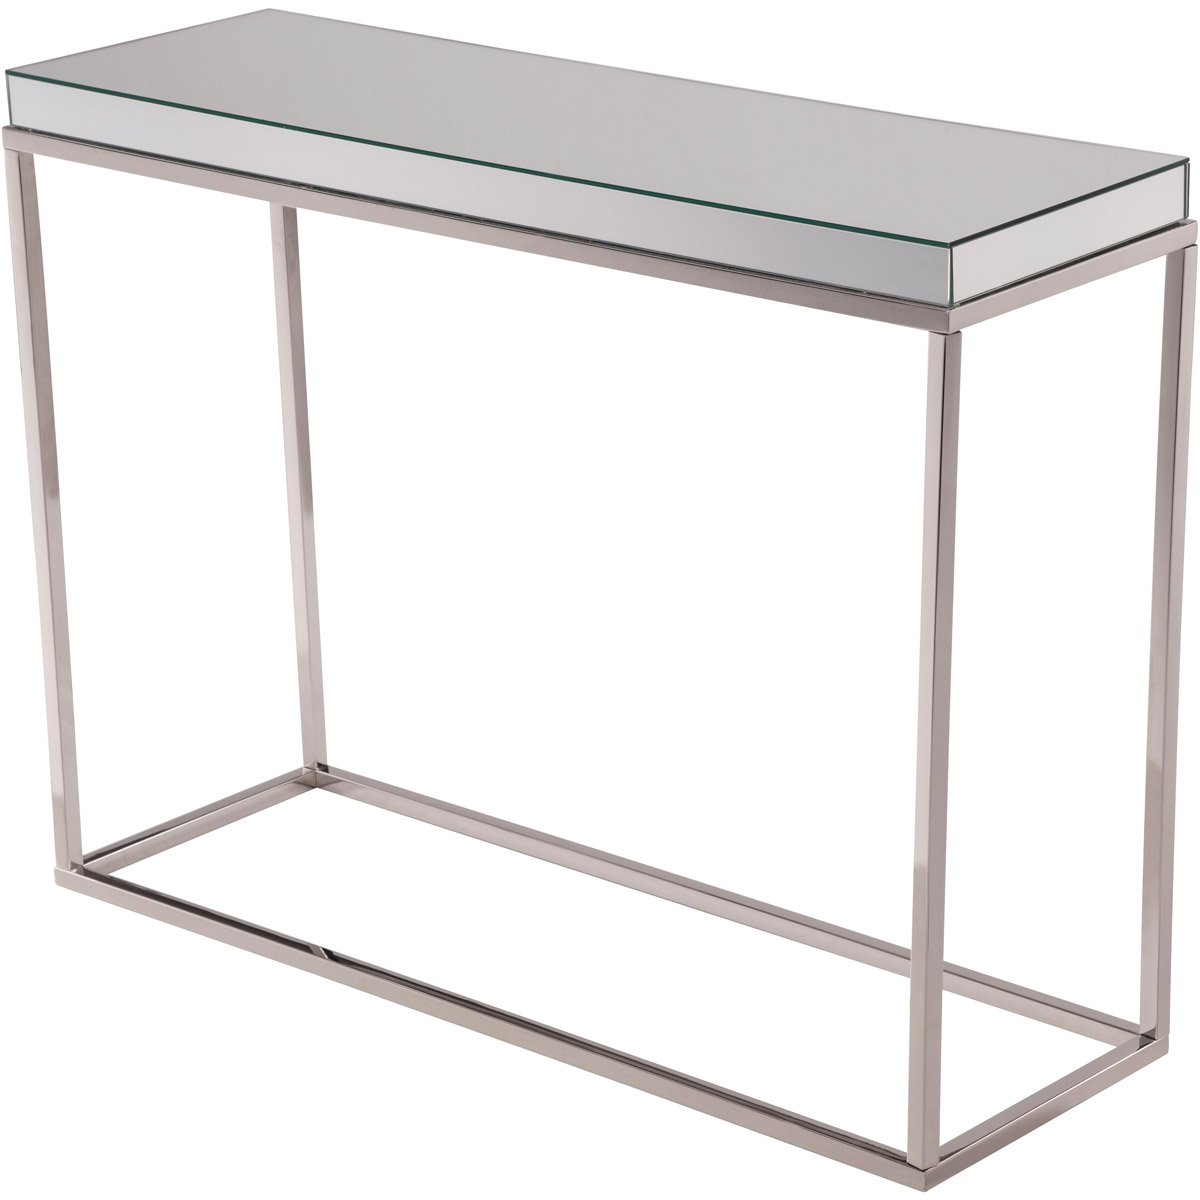 Contempo 42 X 32 Console Table - Clear Finish (Mf6-3003) Console Table